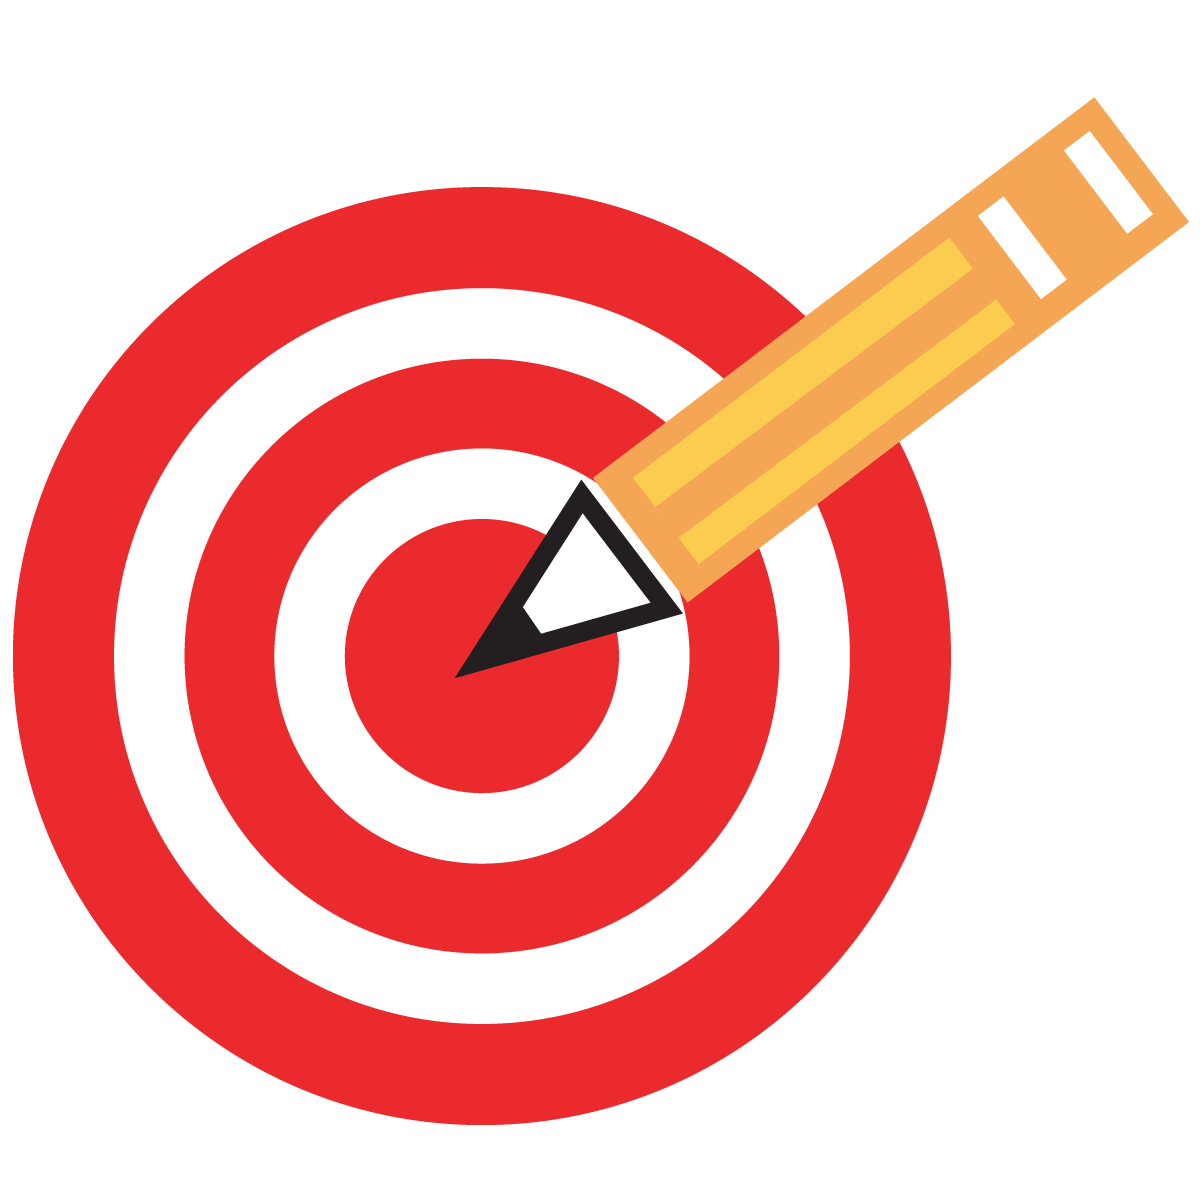 Target clipart data student. Goal group pencil and